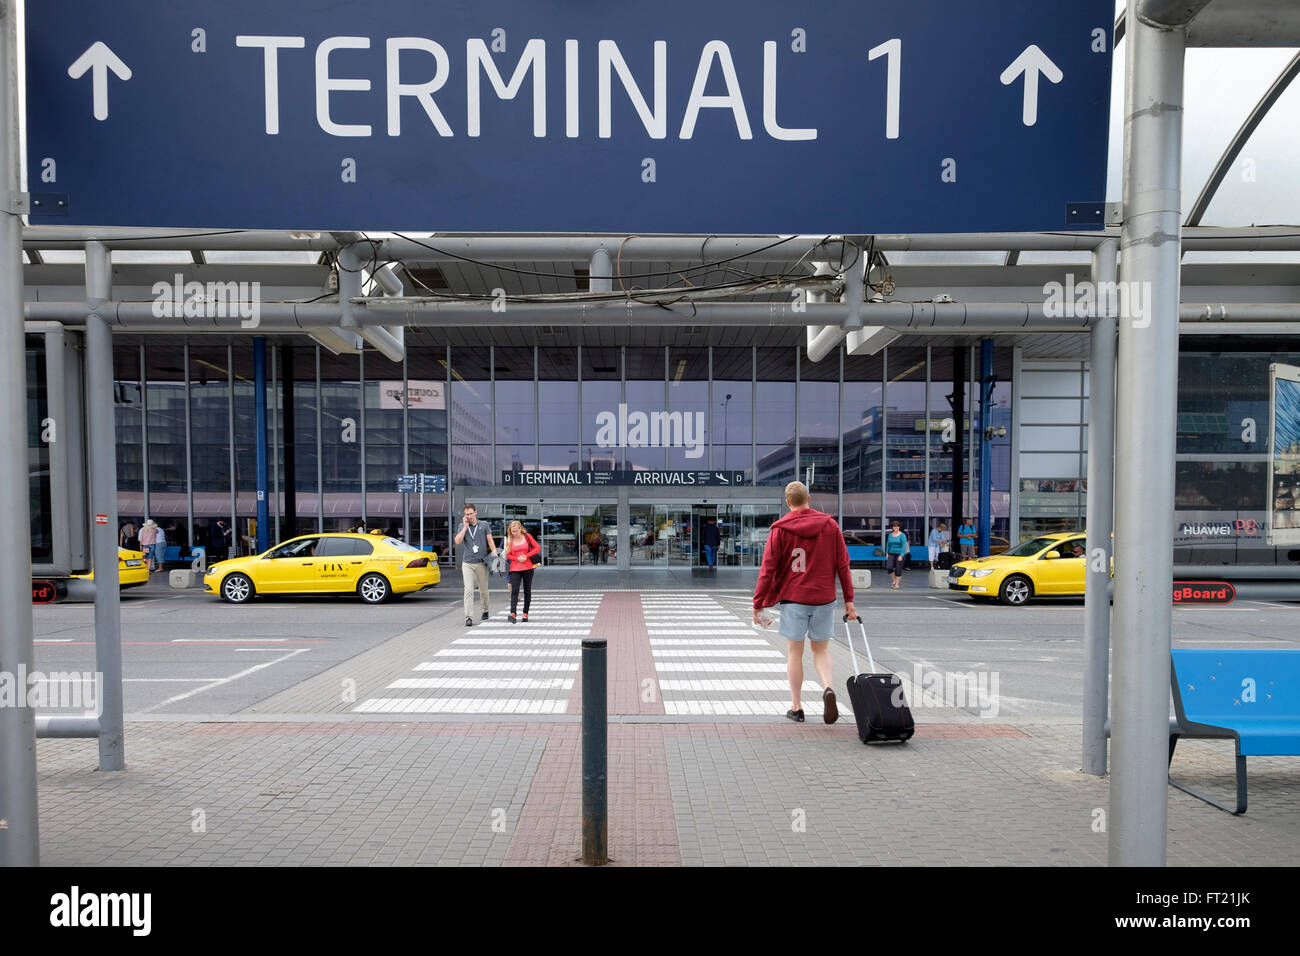 Vaclav Havel Airport terminal 1 in Prague, Czech Republic, Europe - Stock Image